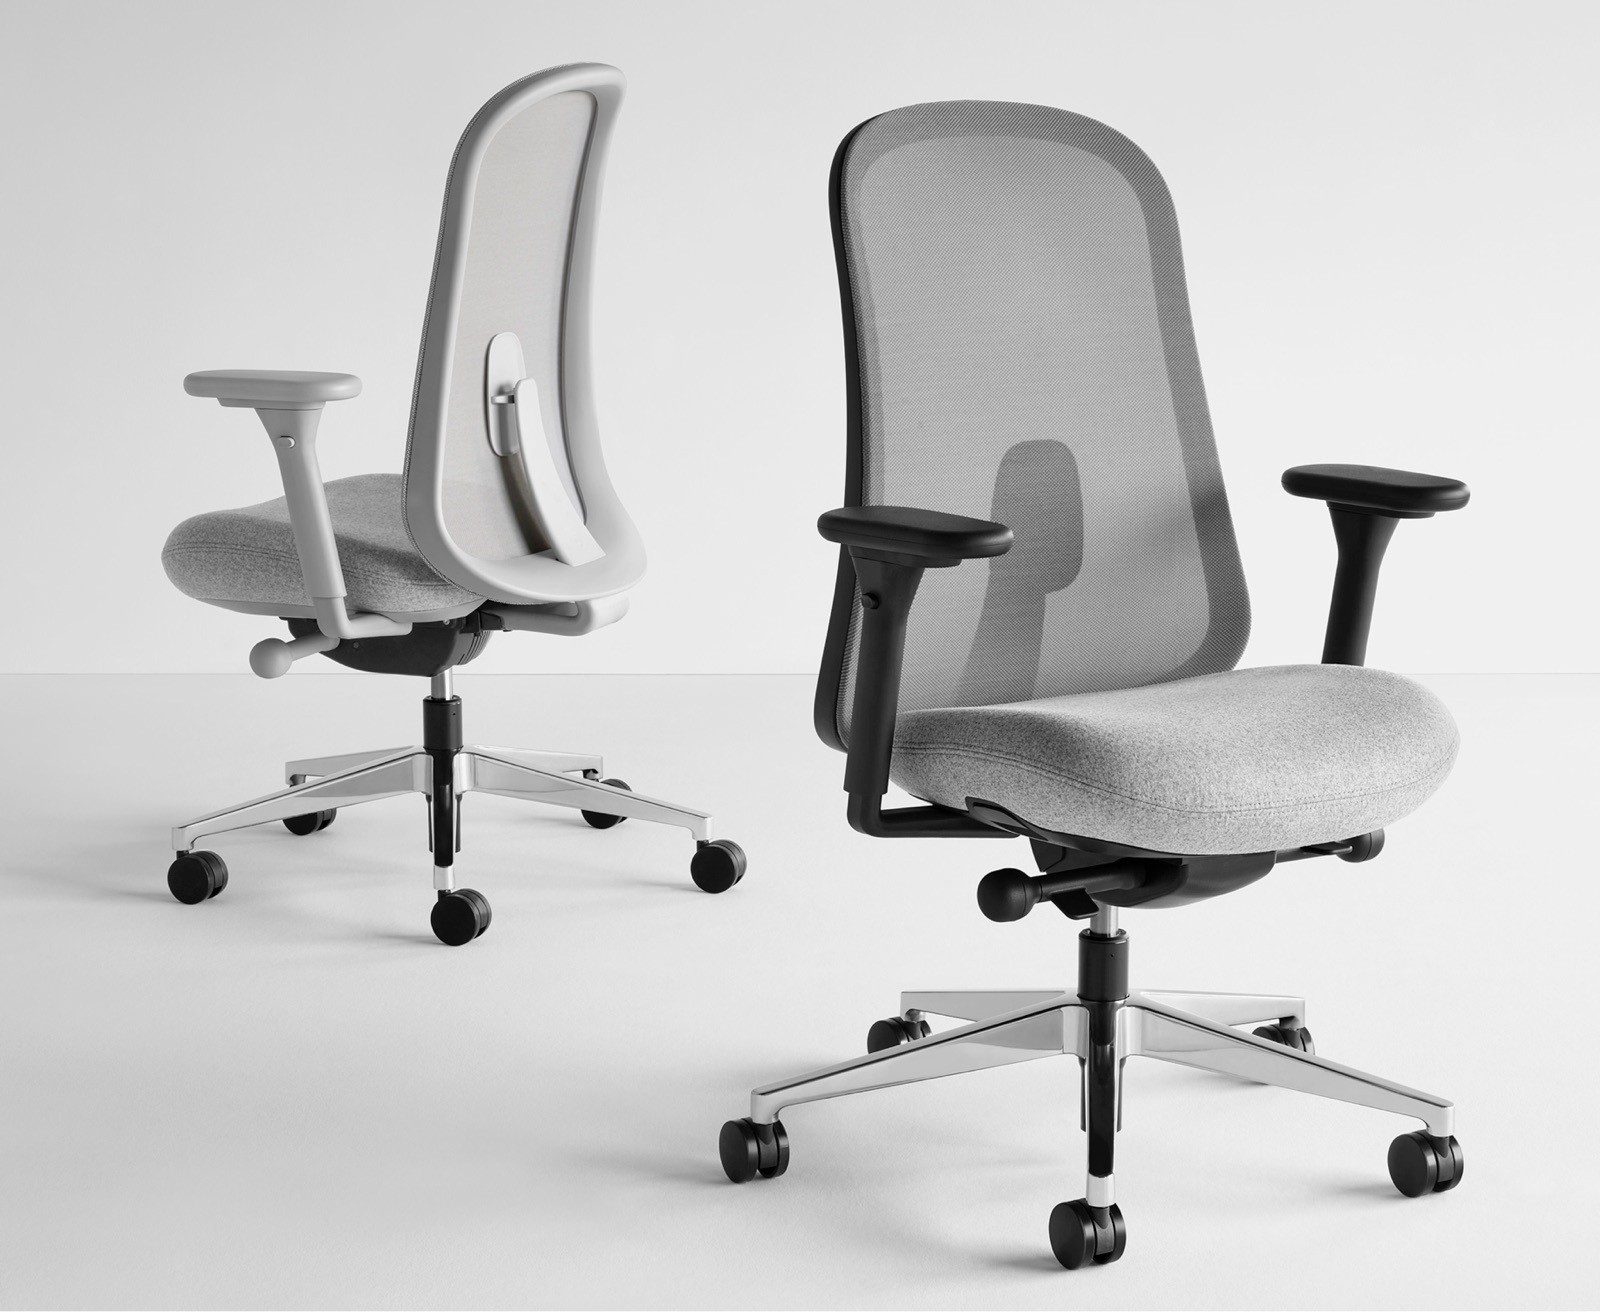 Two black and grey Lino Chairs with adjustable sacral lumbar support, viewed from the front and back at angles.